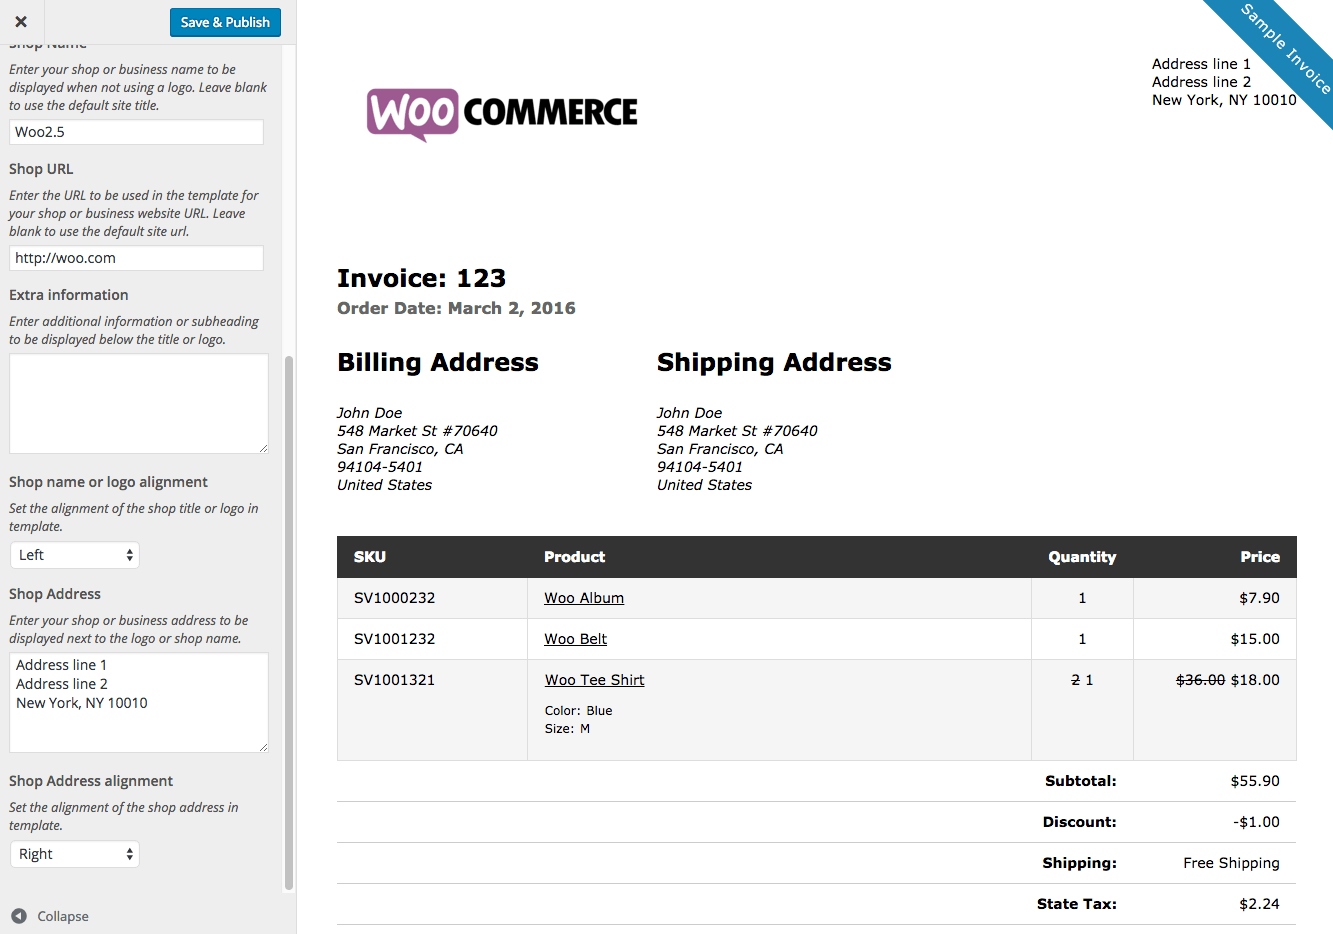 Coolmathgamesus  Outstanding Woocommerce Print Invoices Amp Packing Lists  Woocommerce Docs With Outstanding Woocommerce Print Invoices  Packing Lists Customizer With Captivating Receipt Letter Also Tax Receipt Template In Addition Harbor Freight Return Policy Without Receipt And Jetblue Receipt Request As Well As Receipt Books Walmart Additionally Rent Receipt Doc From Docswoocommercecom With Coolmathgamesus  Outstanding Woocommerce Print Invoices Amp Packing Lists  Woocommerce Docs With Captivating Woocommerce Print Invoices  Packing Lists Customizer And Outstanding Receipt Letter Also Tax Receipt Template In Addition Harbor Freight Return Policy Without Receipt From Docswoocommercecom